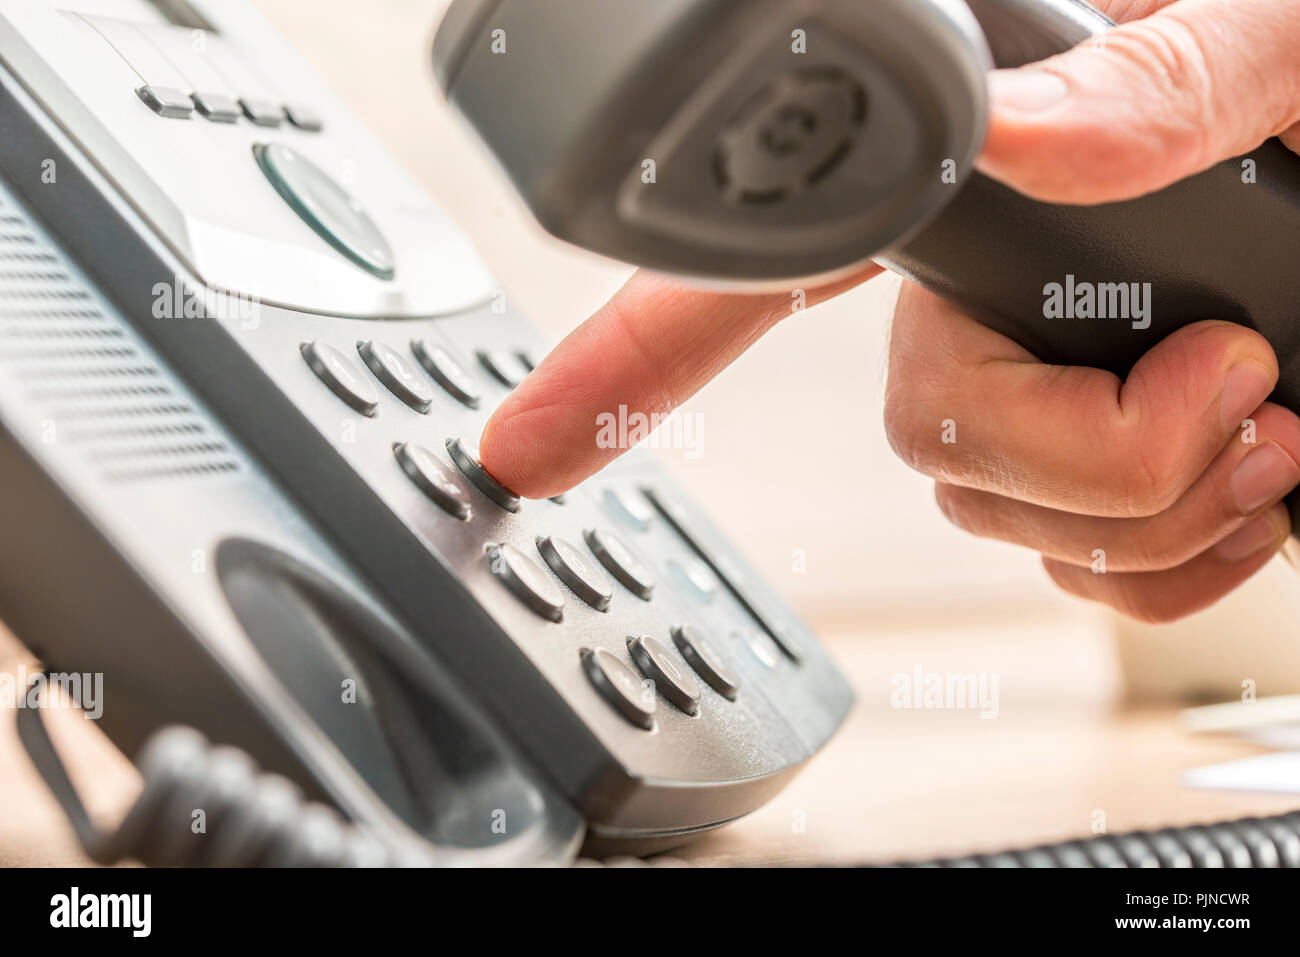 Closeup of male telemarketing salesperson holding a telephone receiver dialing phone number to make a business call. - Stock Image